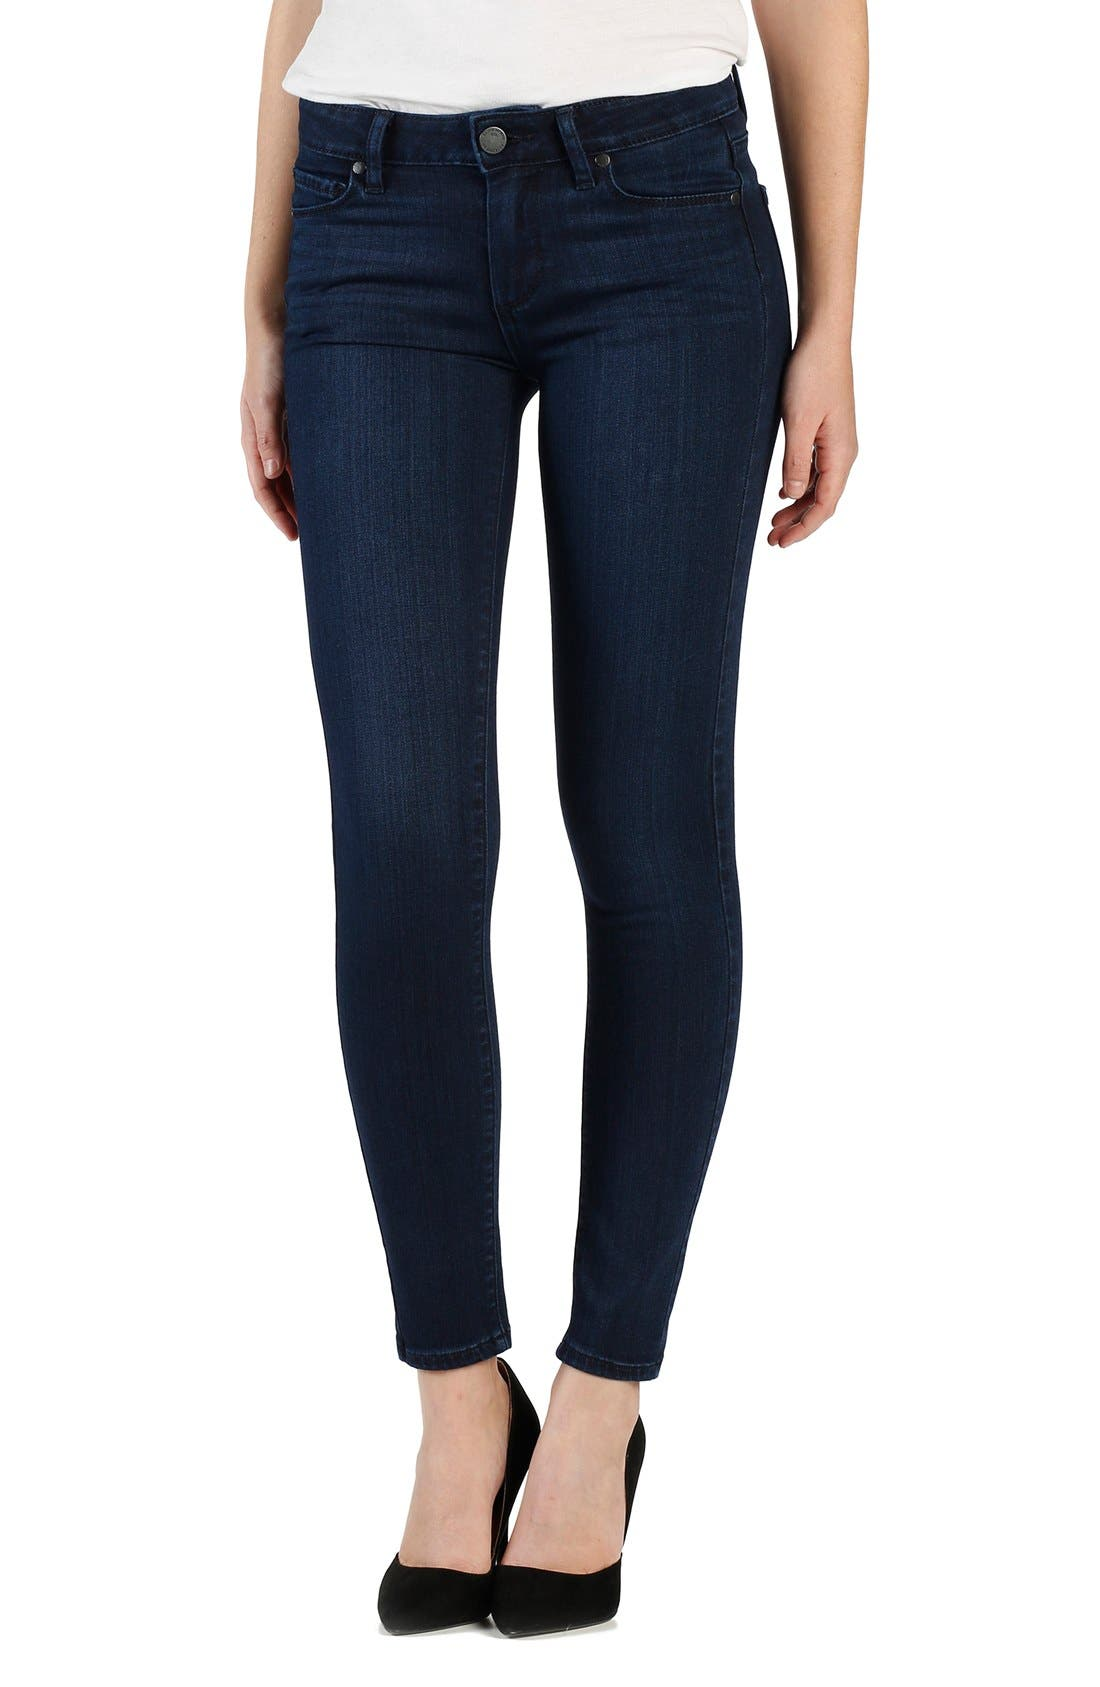 Main Image - PAIGE 'Transcend - Verdugo' Ultra Skinny AnkleJeans (Holly)